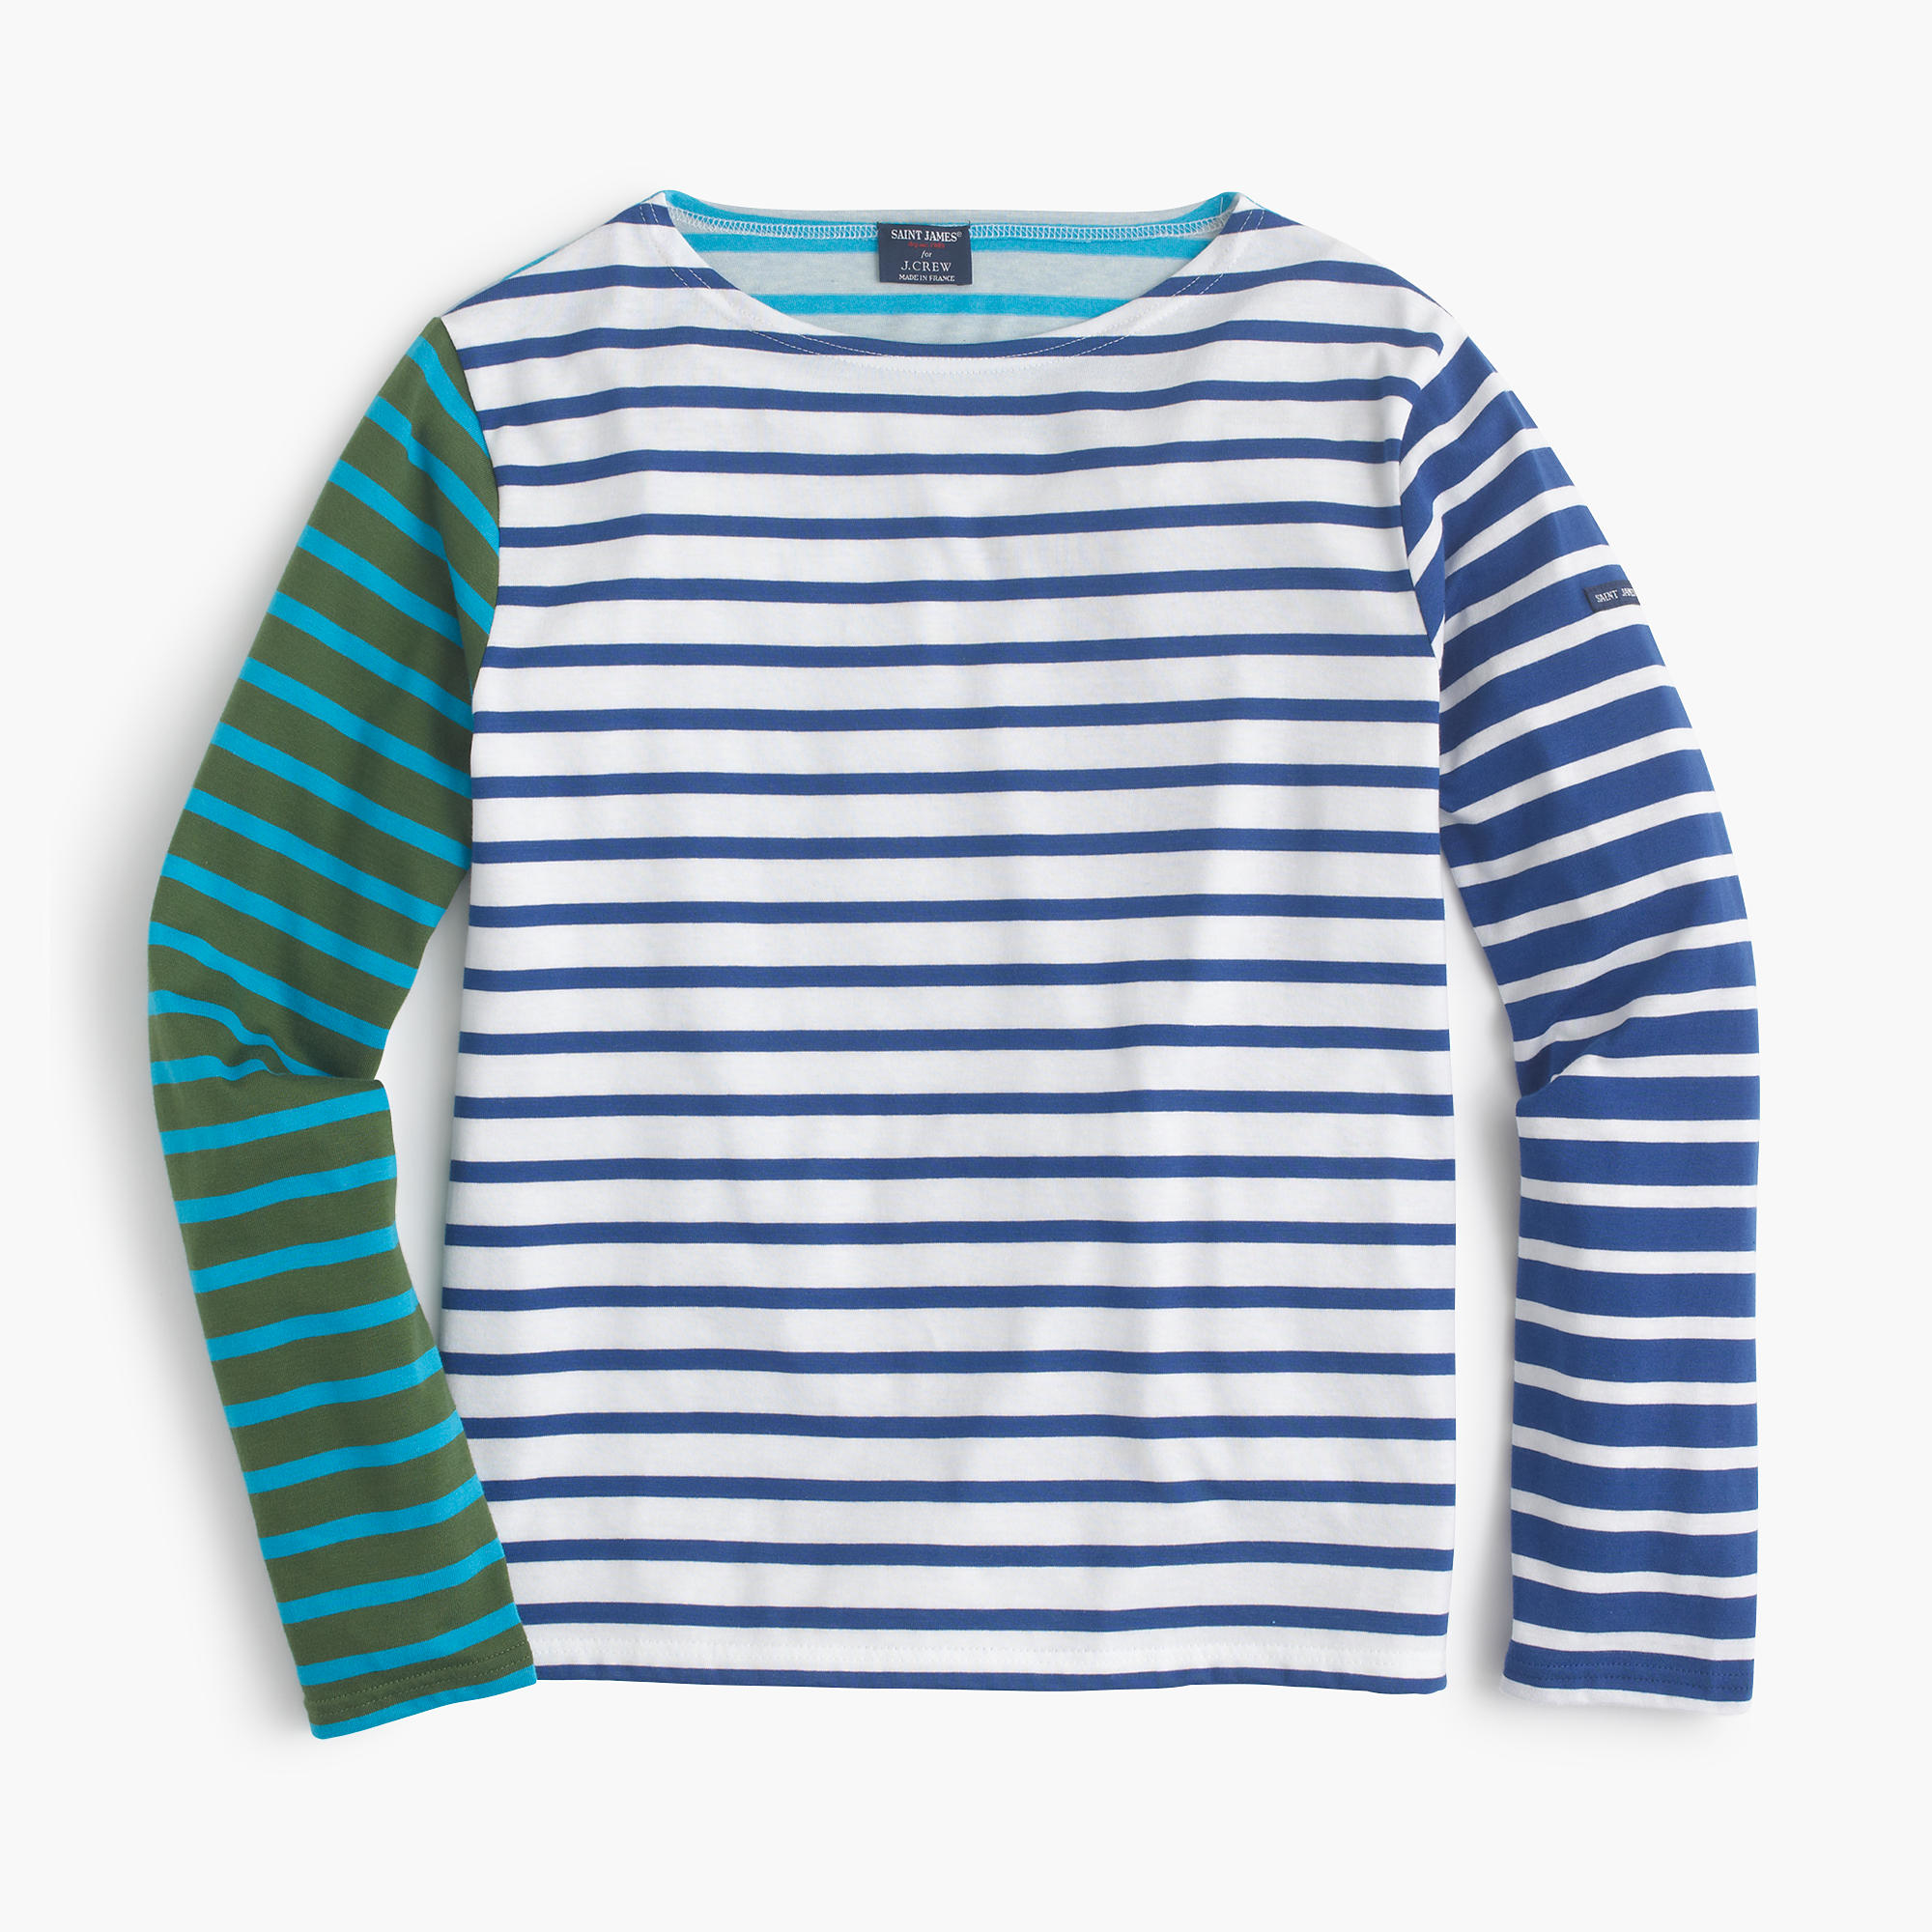 Saint james colorblock stripe t shirt in blue lyst for St james striped shirt